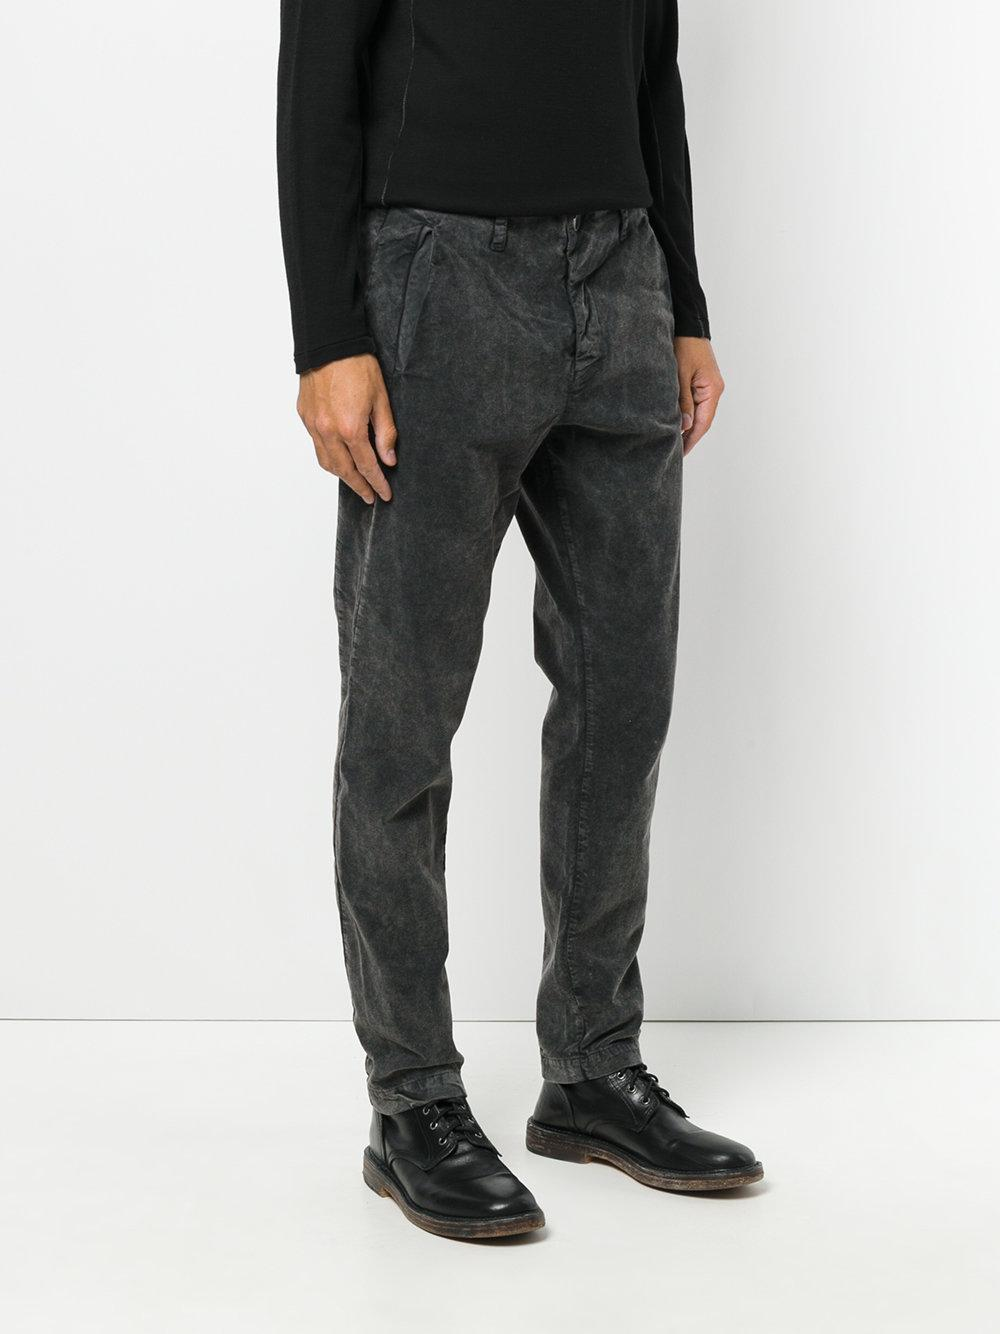 Transit Cotton Loose-fit Trousers in Grey (Grey) for Men